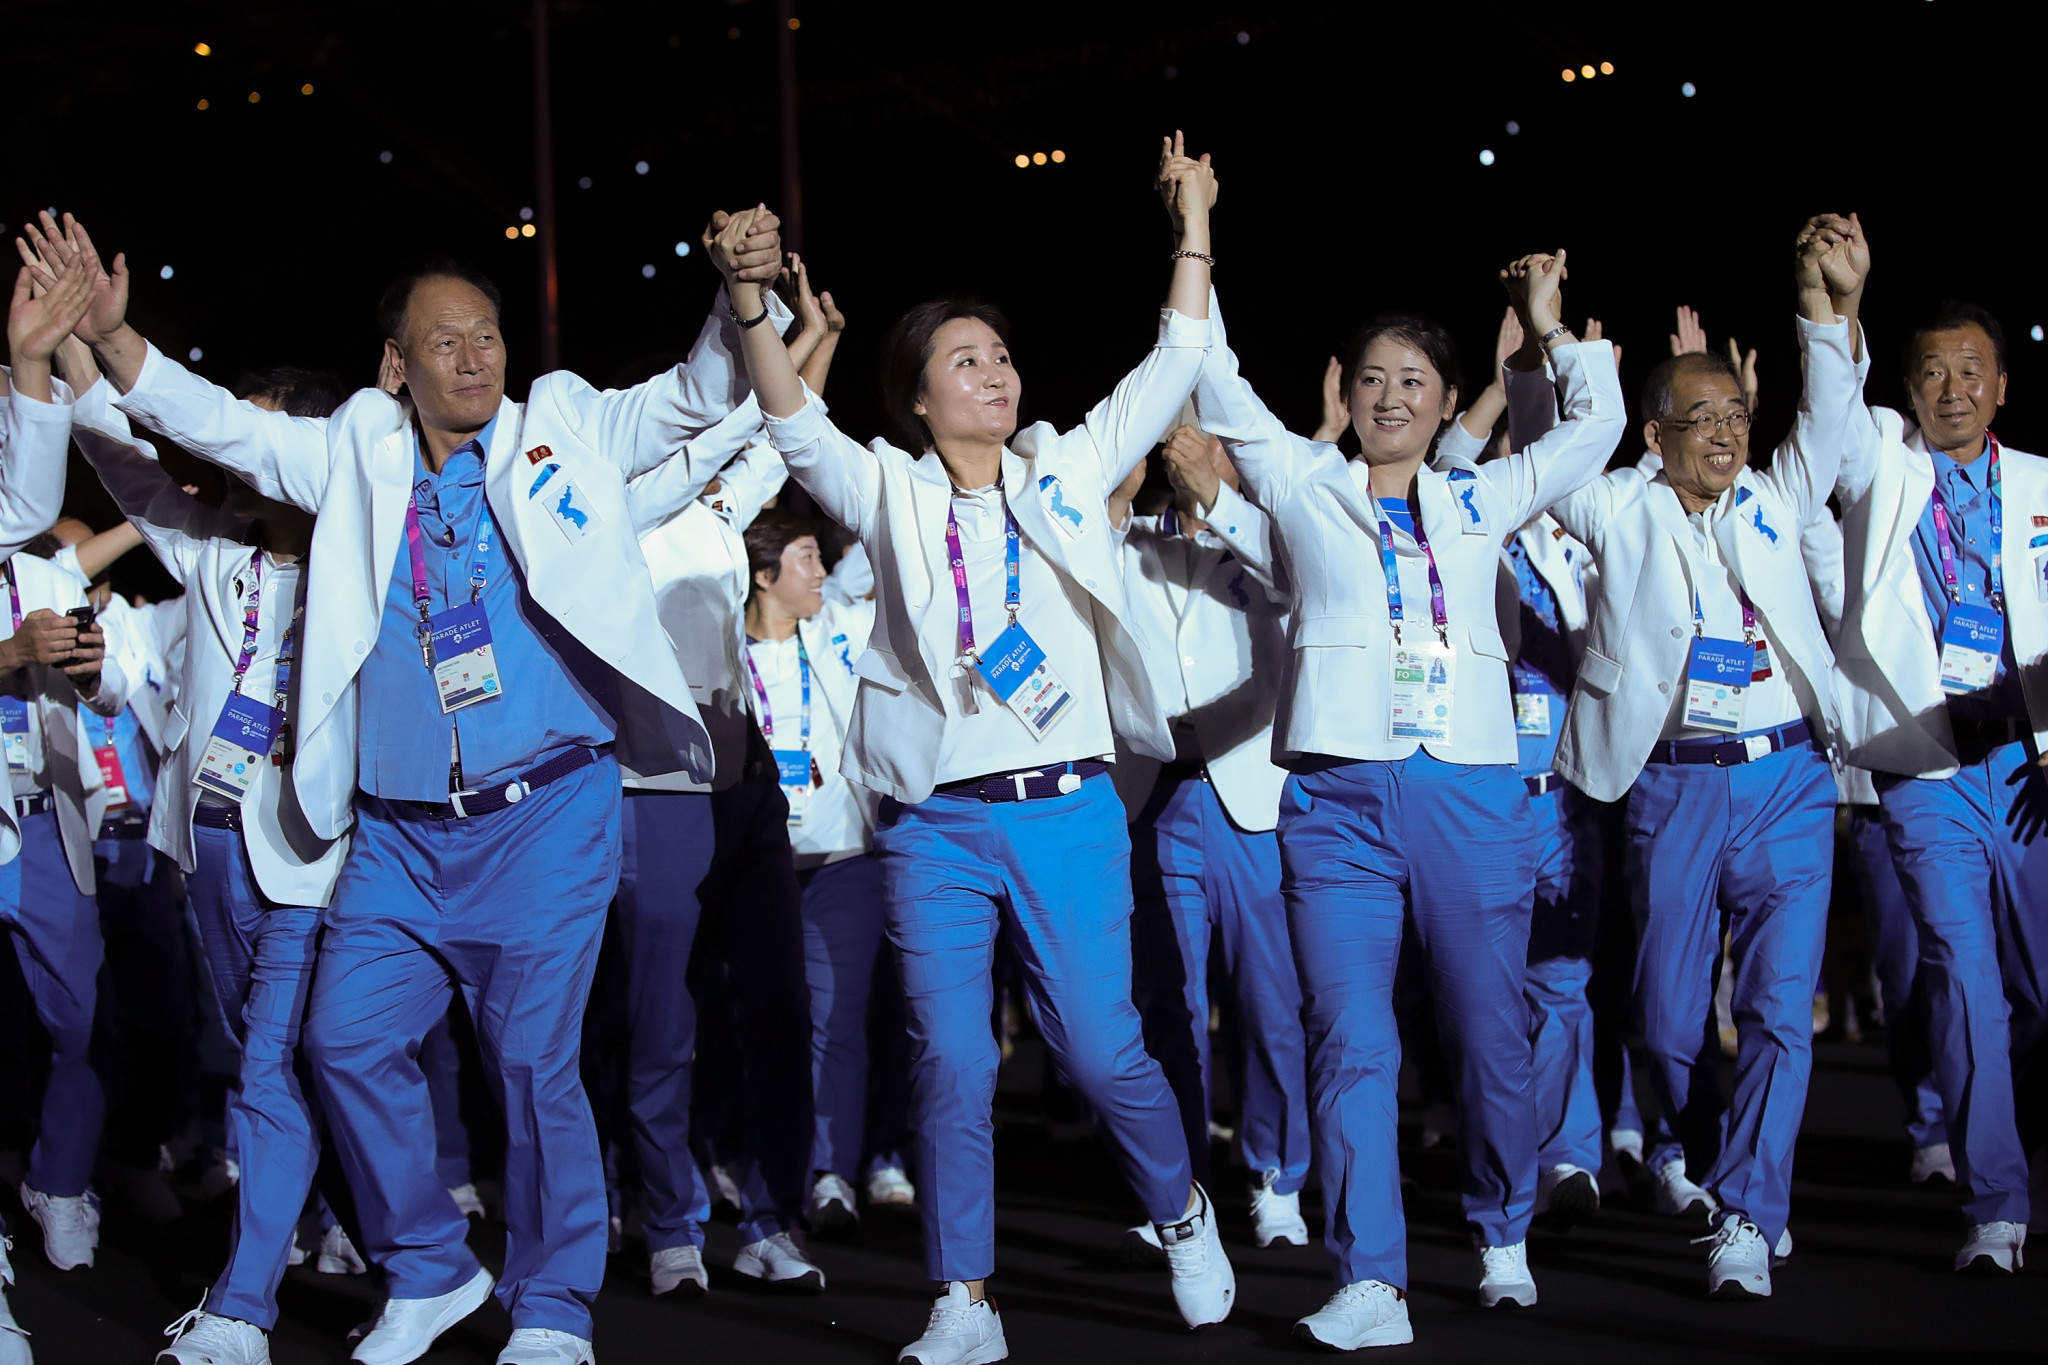 North and South Korea marched together at the 2018 Asian Games but the Asian Para Games will be the first Paralympic-style event at which they will do so ©Getty Images